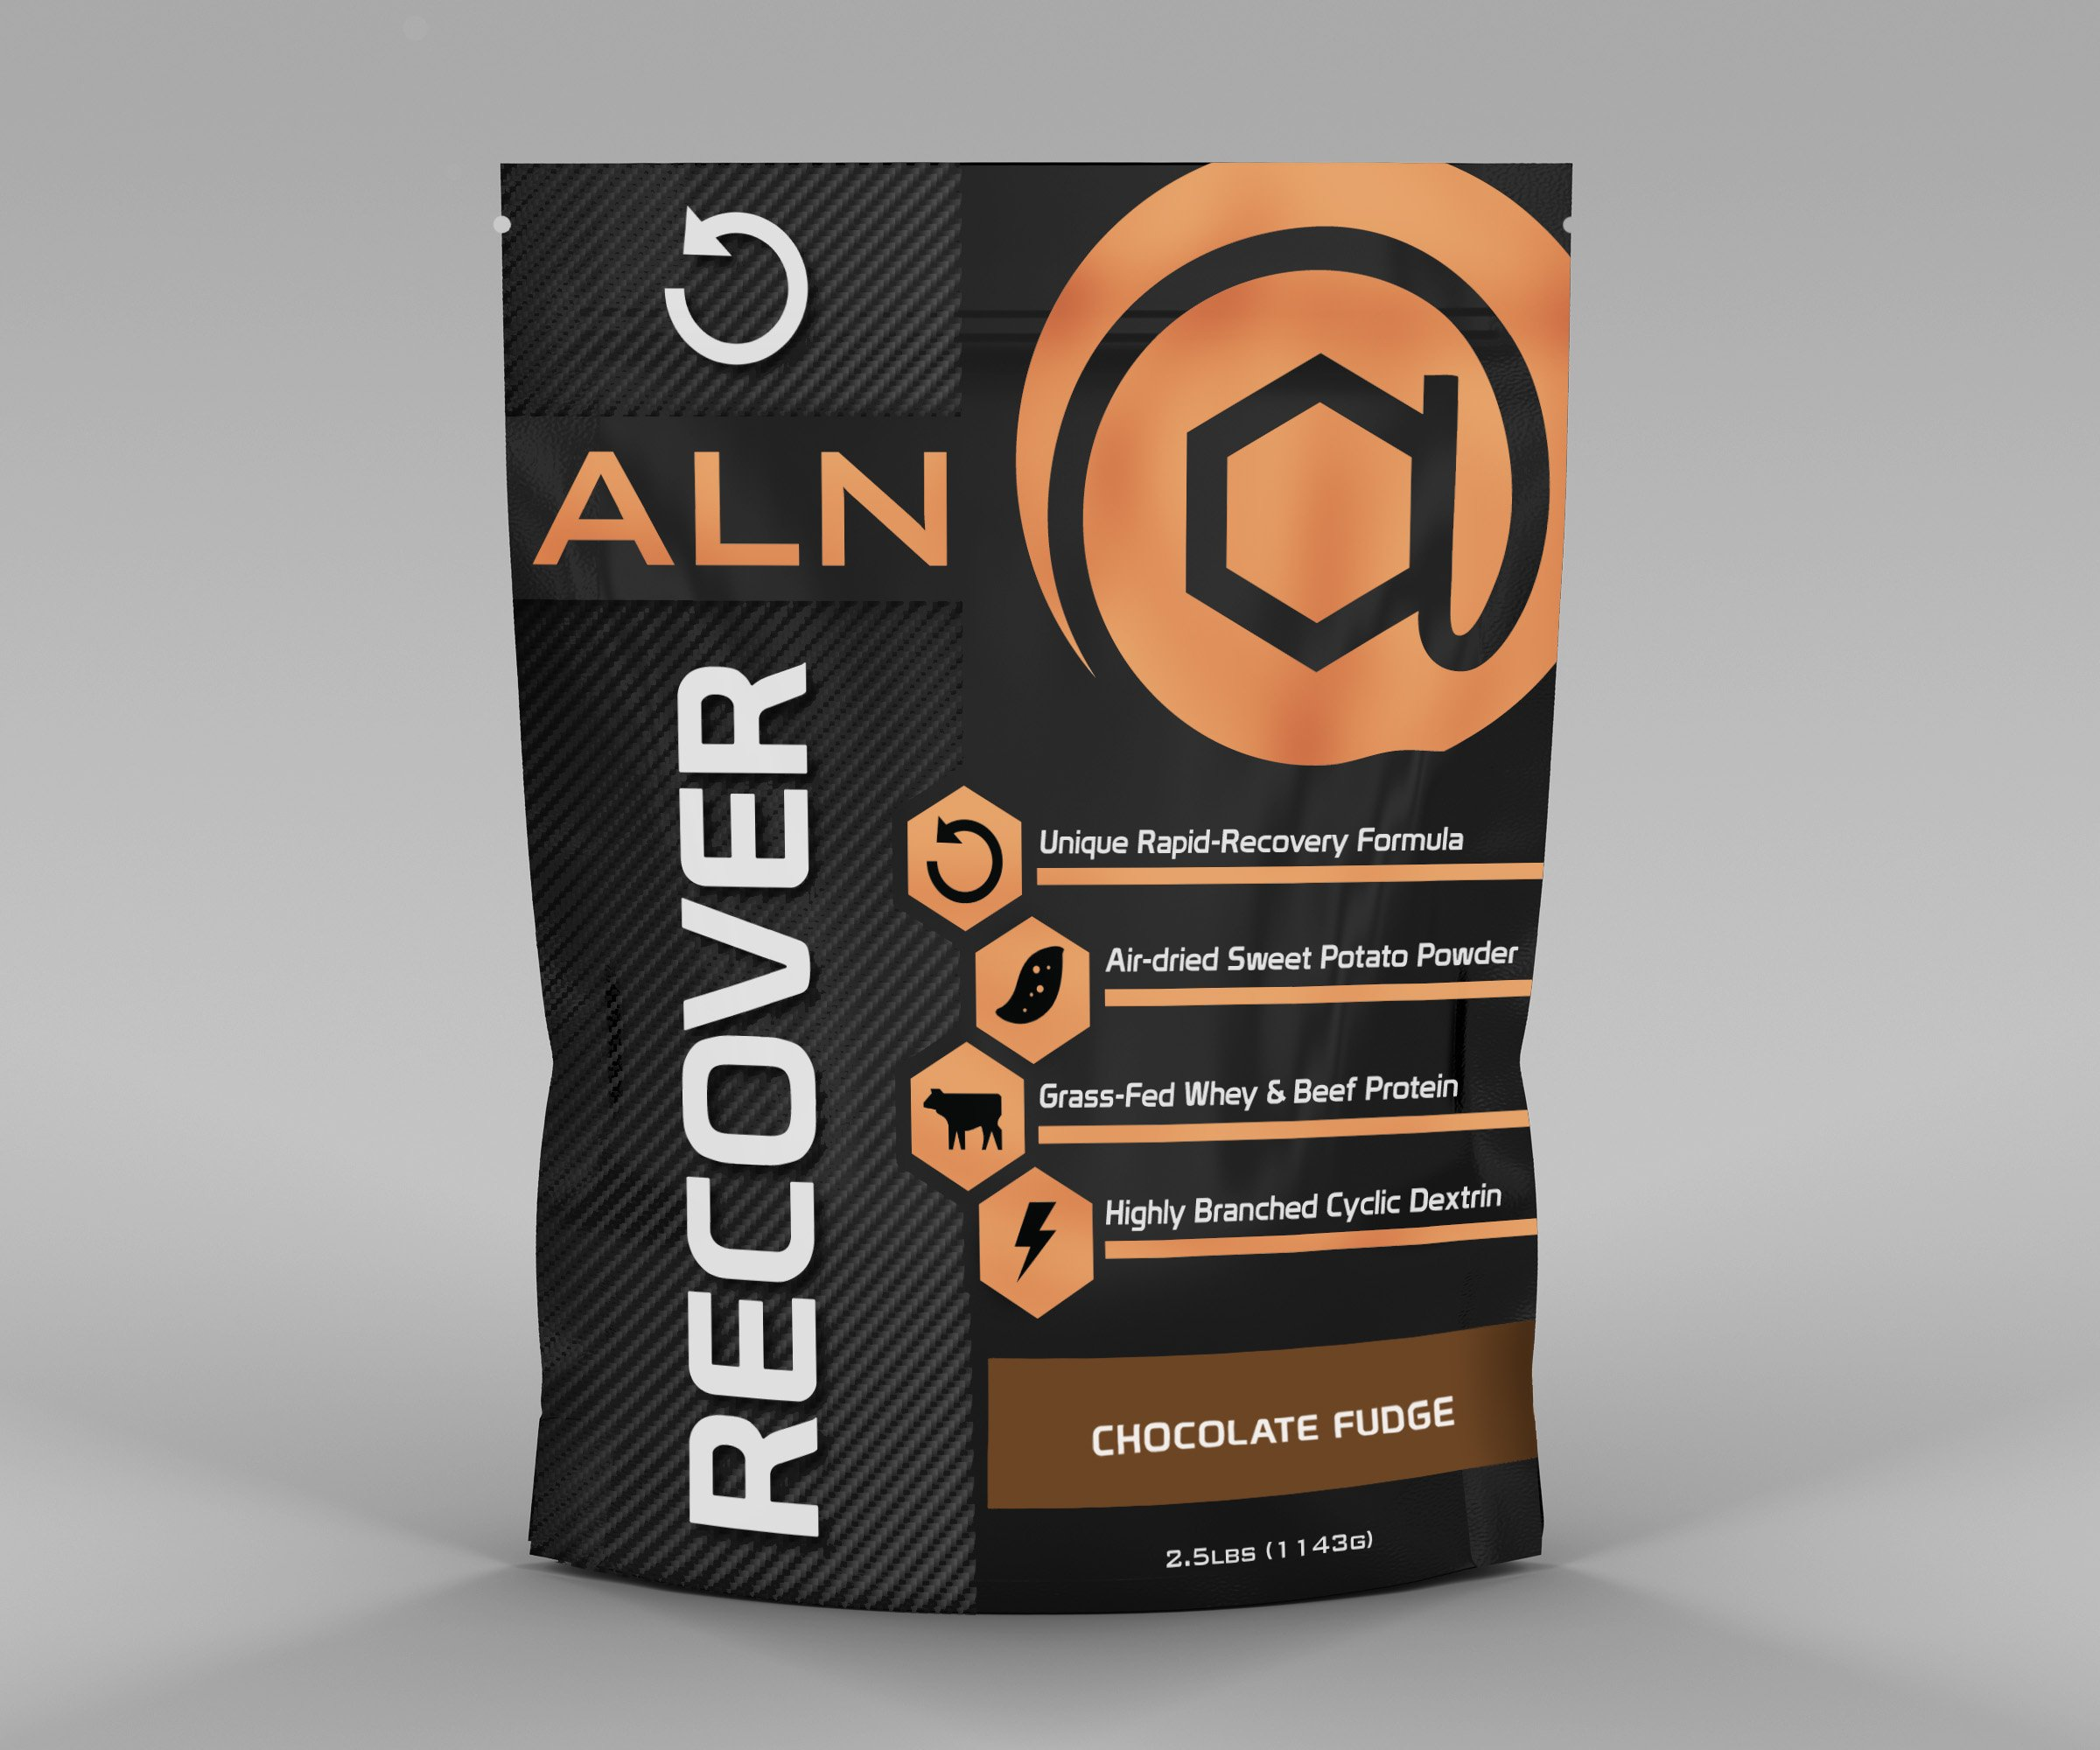 At Large Nutrition: RECOVER Chocolate Fudge post-workout, rapid recovery formula, air-dried sweet potato powder, grass-fed whey, beef protein, Highly Branched Cyclic Dextrin, soy-free, hypoallergenic